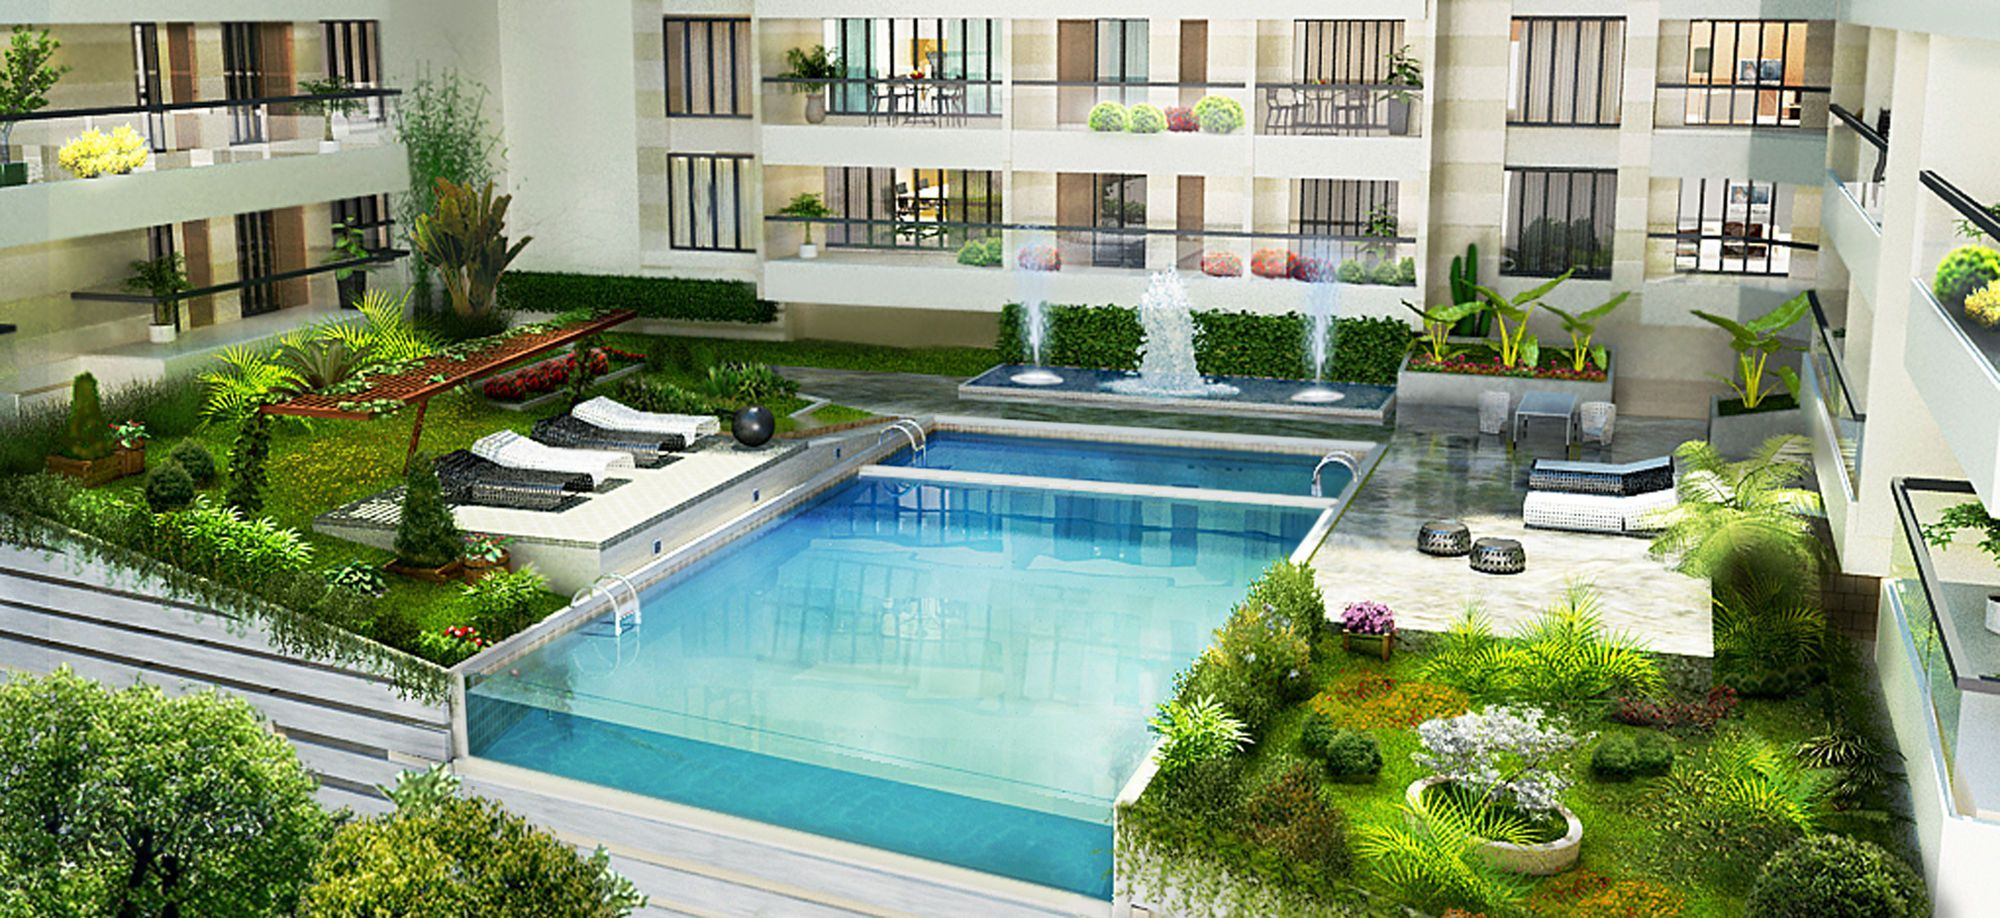 The Best 10 Pics Rooftop Pool And Garden And Review Garden Swimming Pool Garden Pool Design Pool Landscape Design